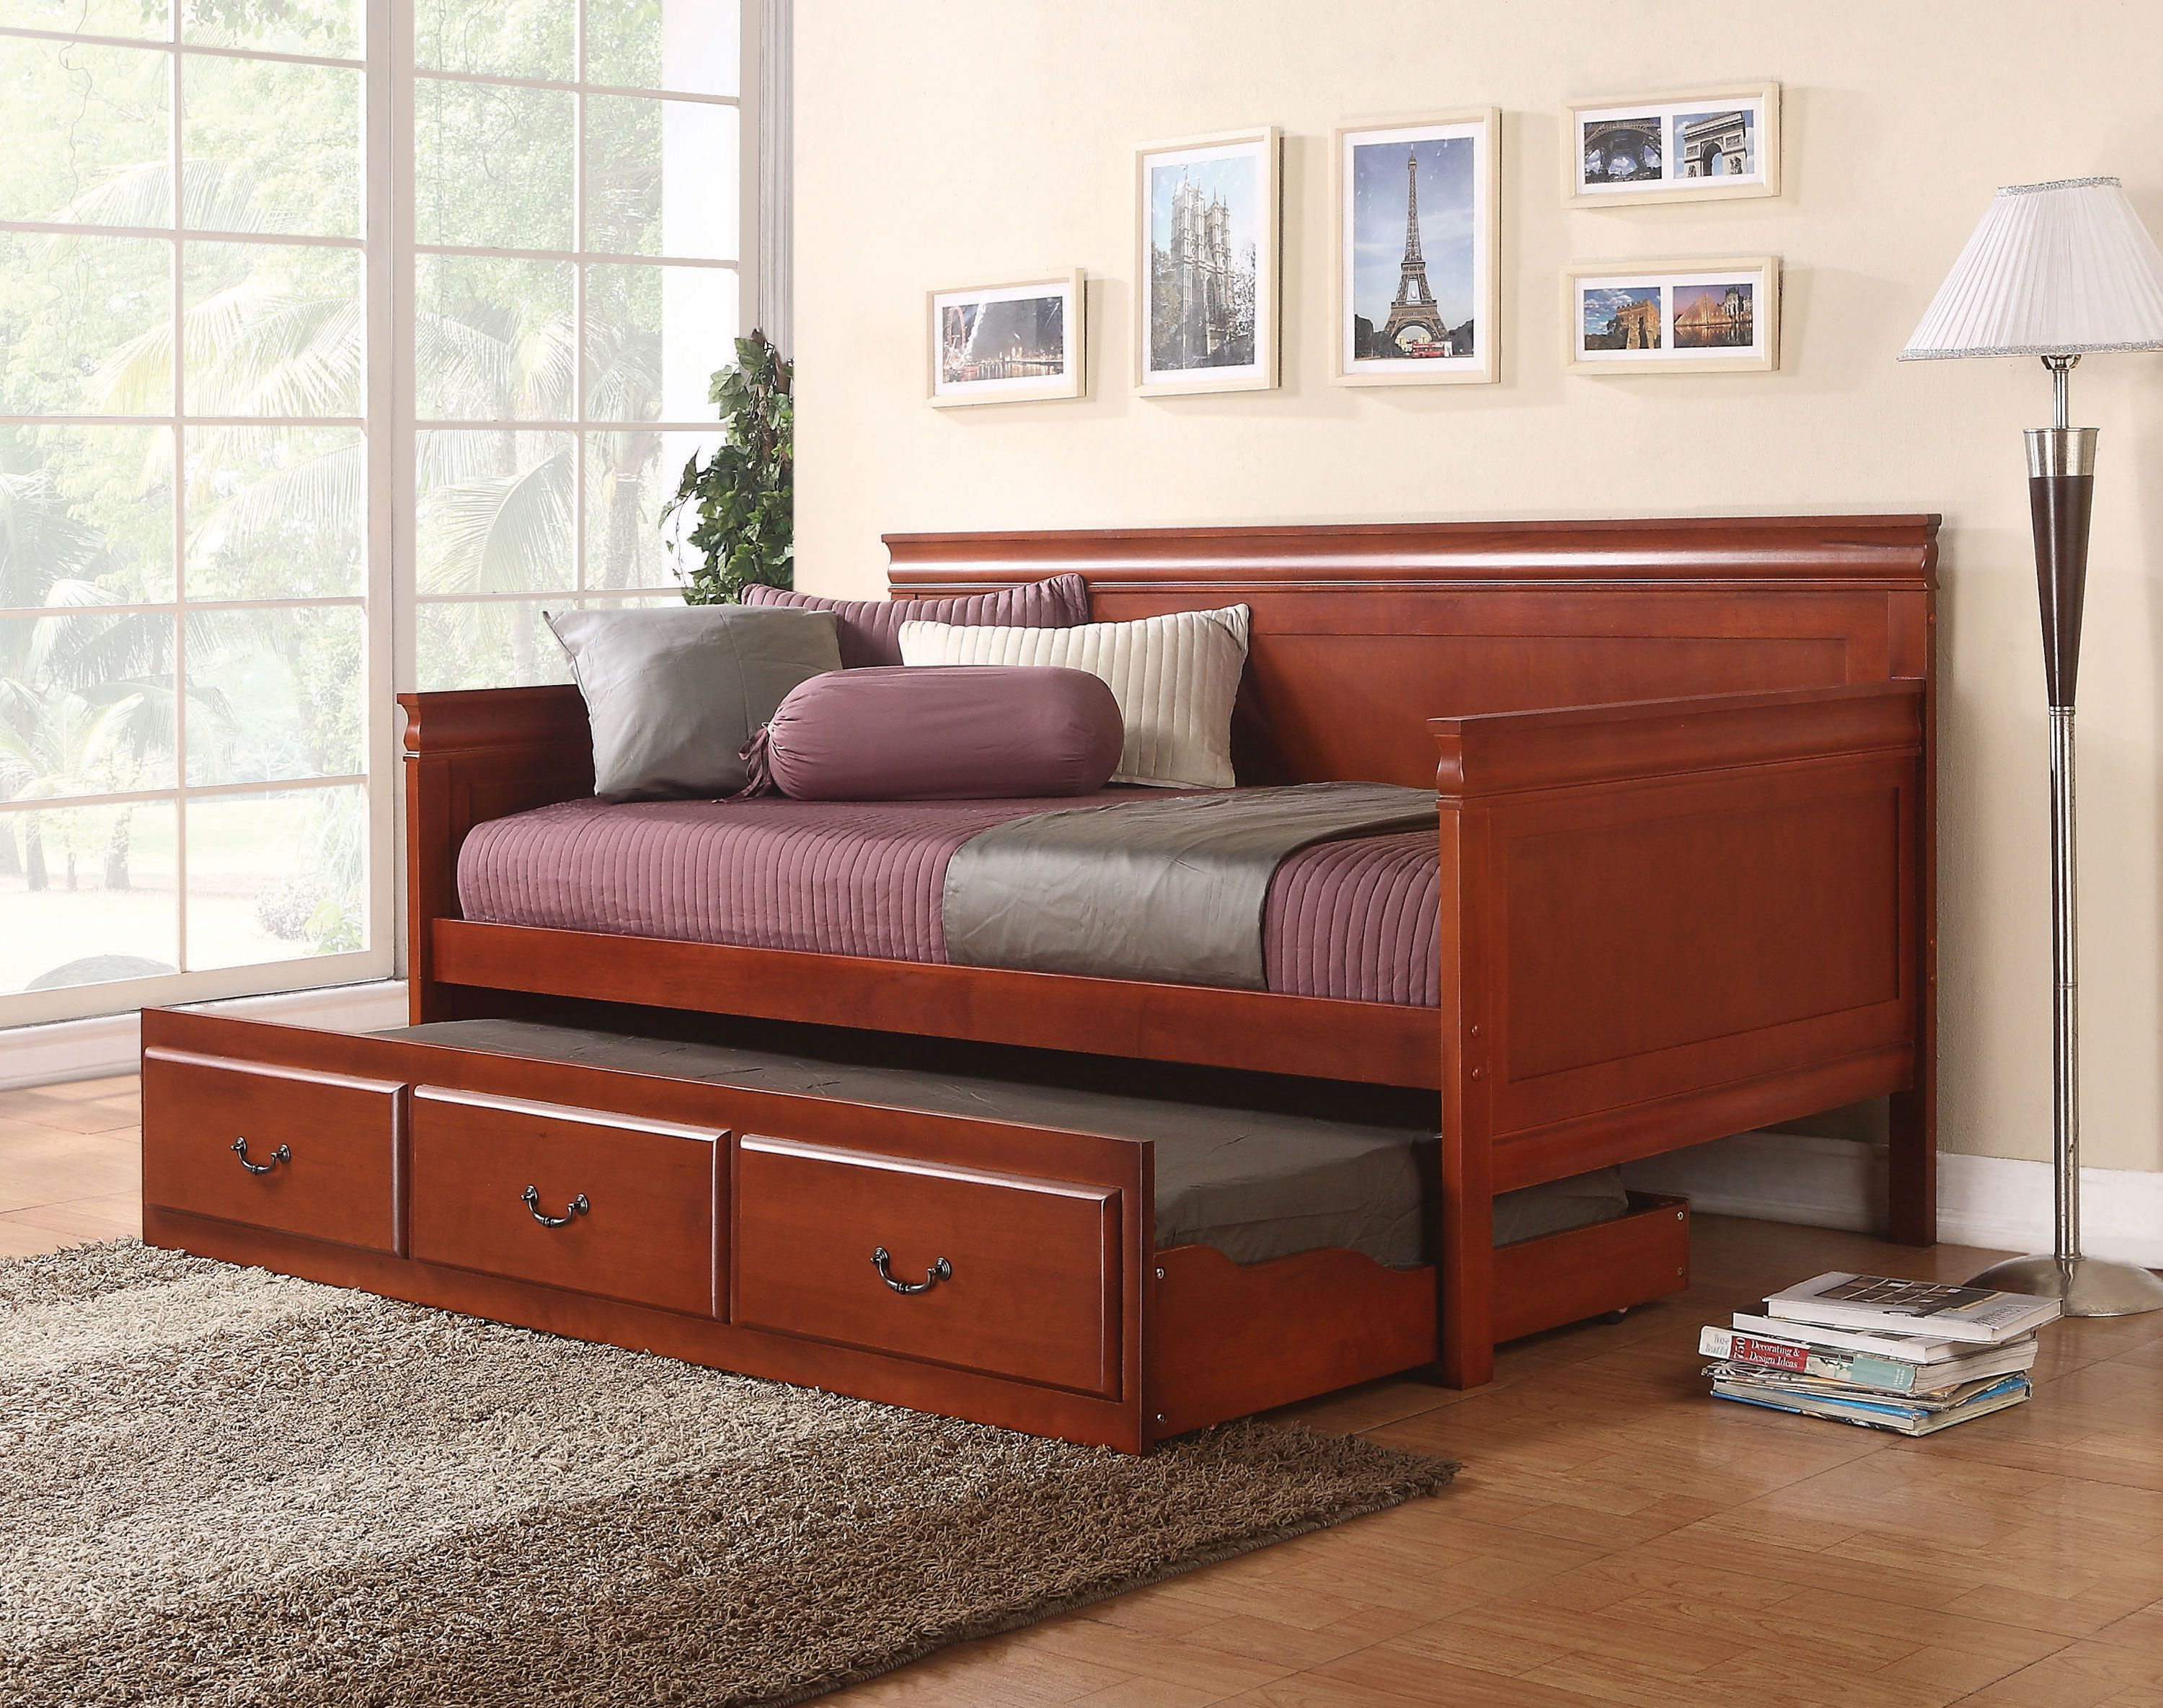 Coaster 300036 Cherry Twin Daybed with Trundle Daybed